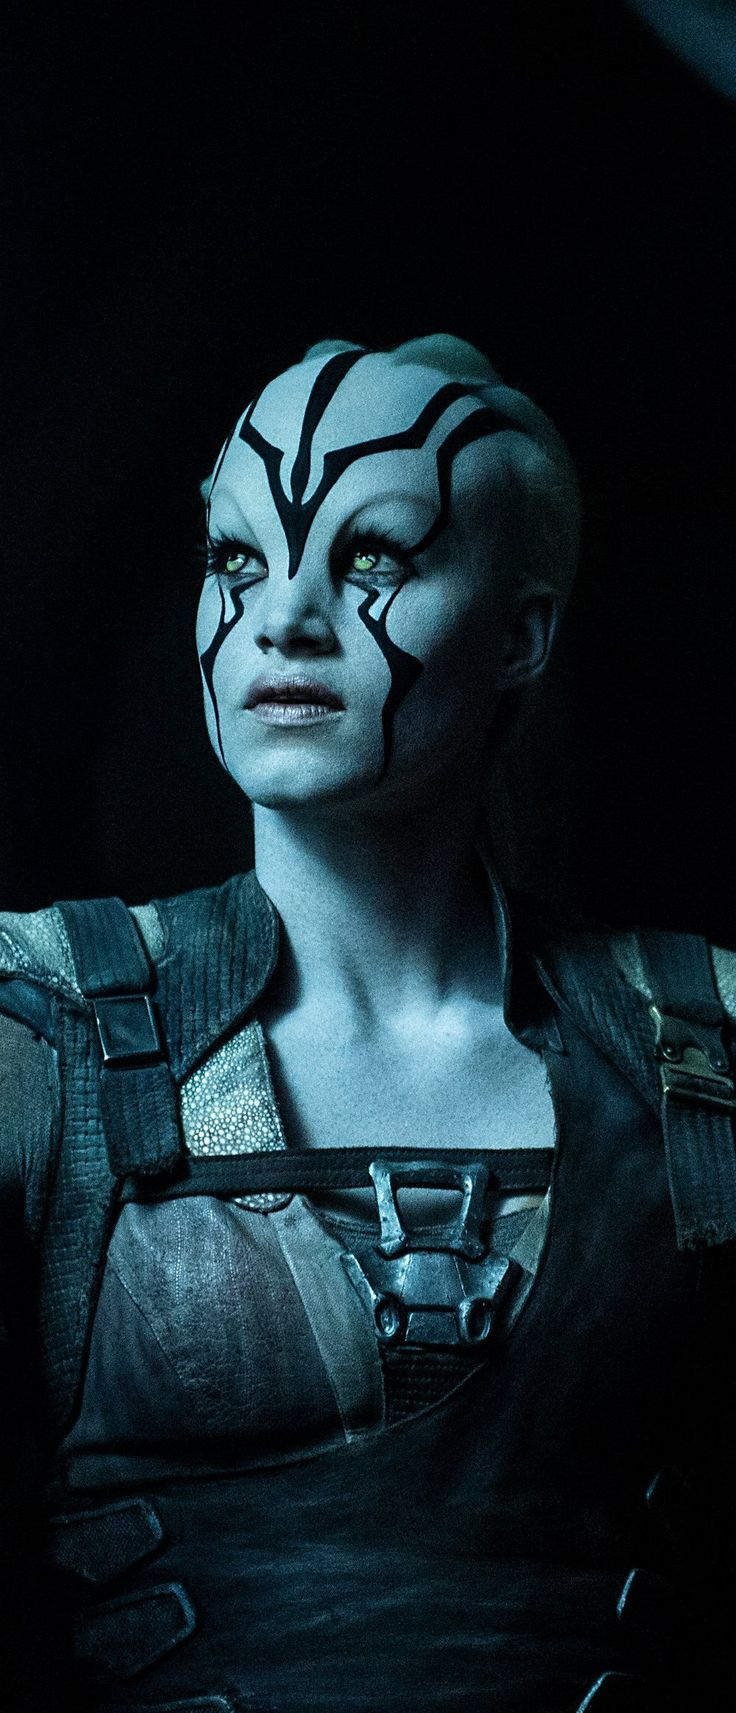 Sofia Boutella as Jaylah in Star Trek - Beyond 2016. Ima do my makeup like this on the regular.